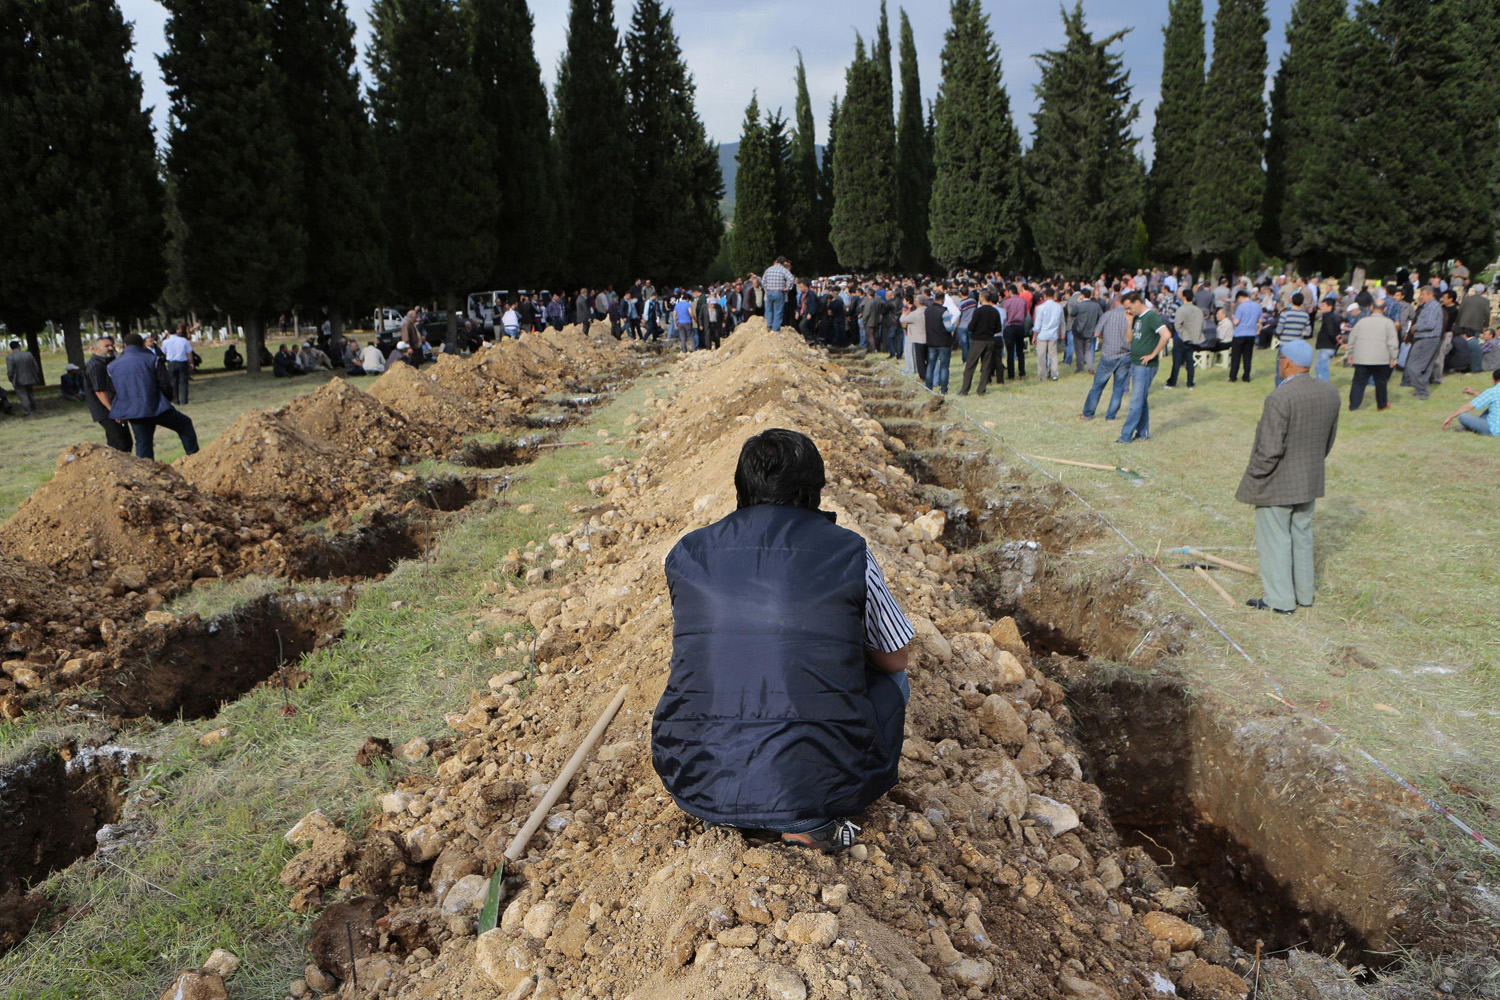 May 14, 2014. A man sits near graves during the funeral of a miner who died in a fire at a coal mine, at a cemetery in Soma, a district in Turkey's western province of Manisa.